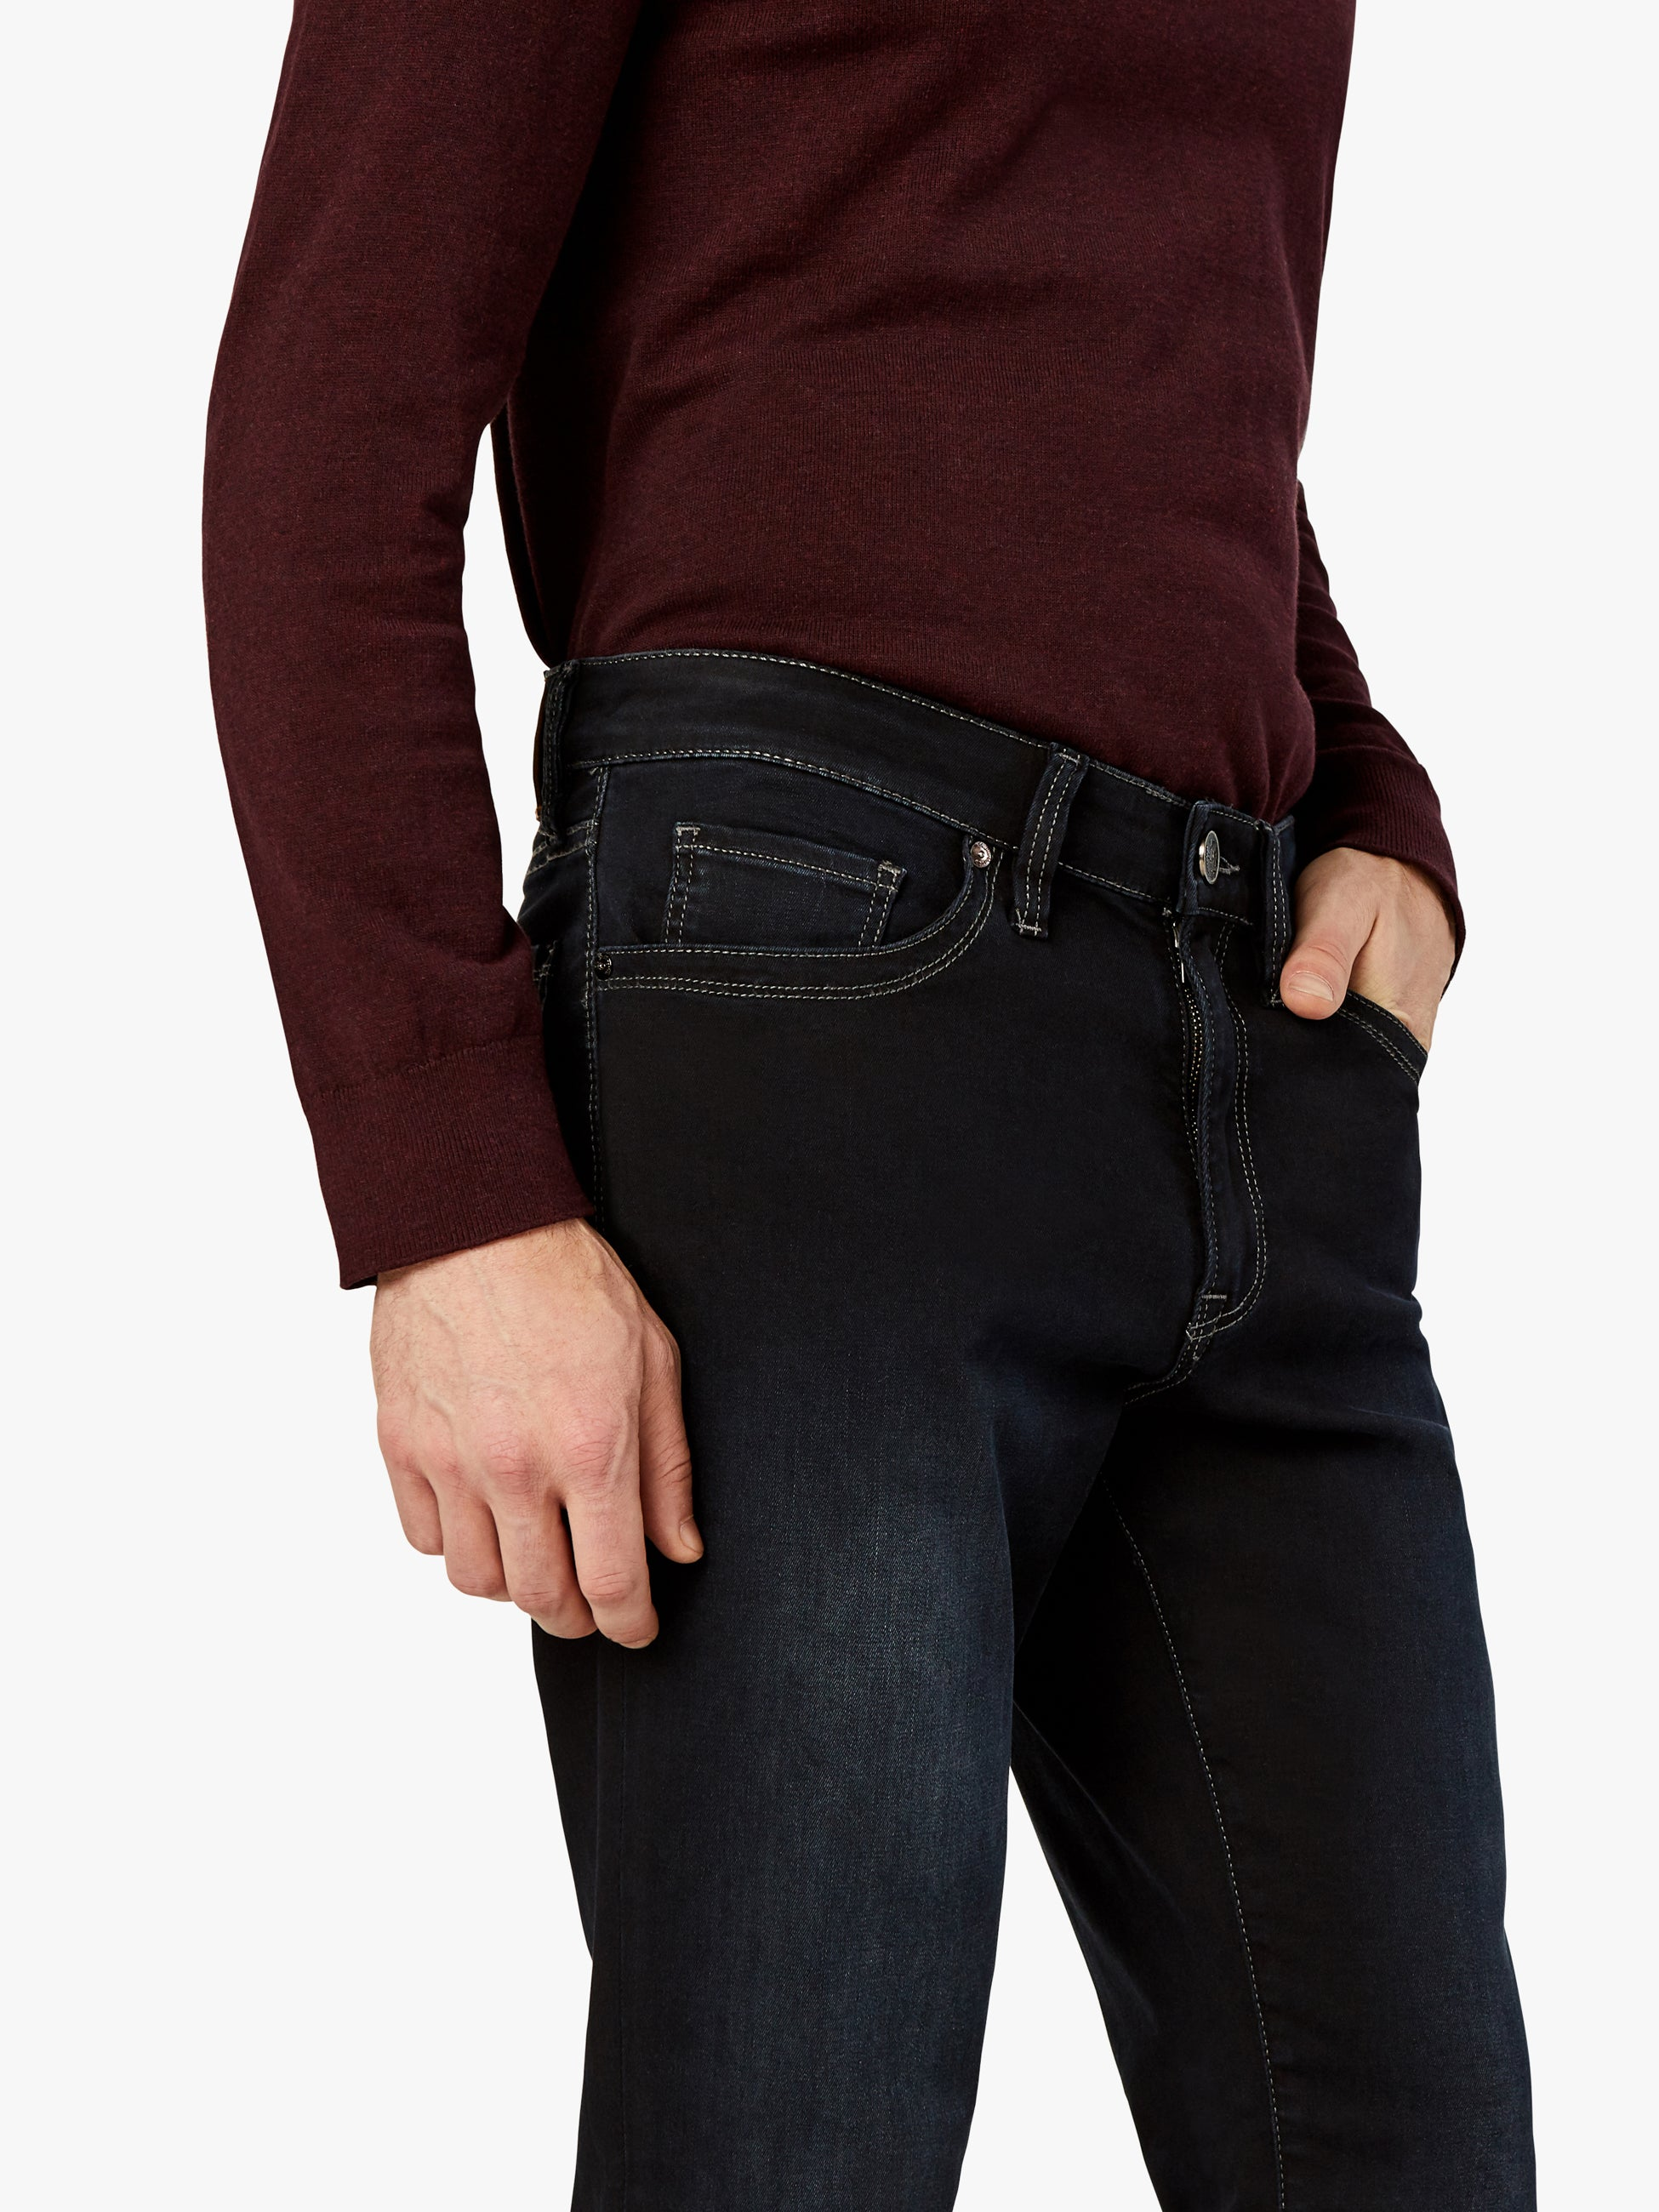 Charisma Classic Fit Jeans In Midnight Austin Image 4